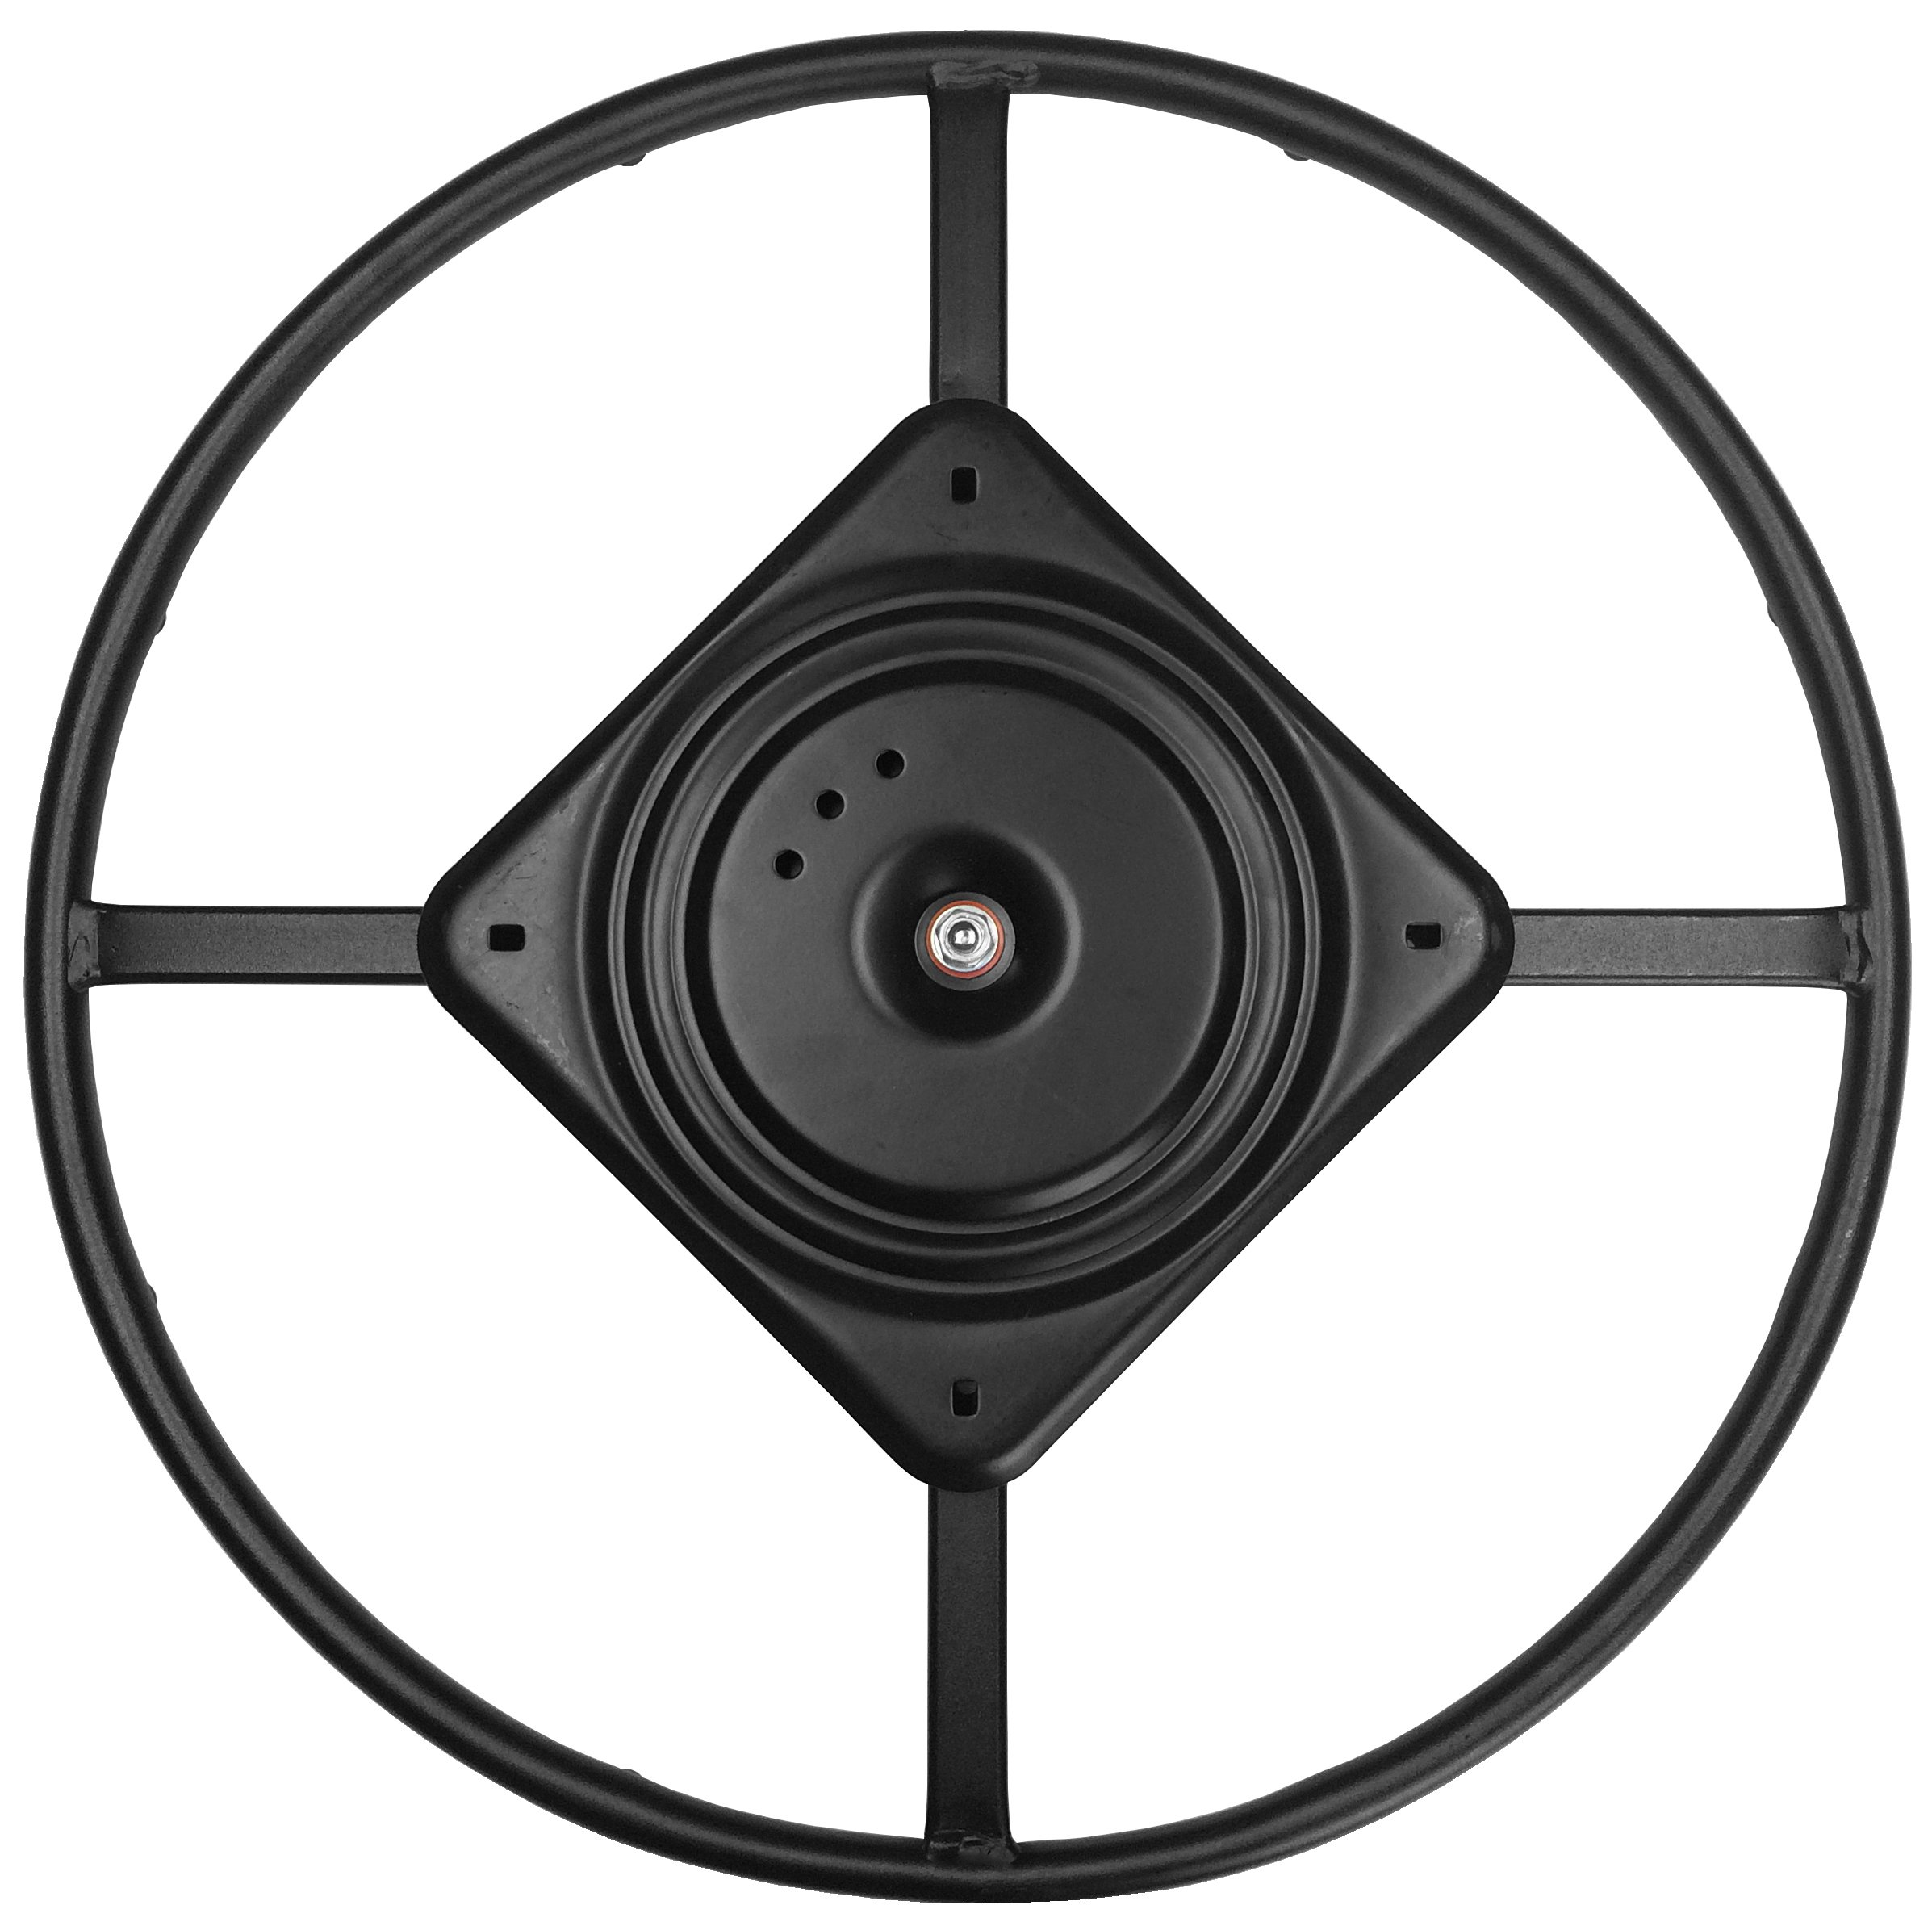 25.5'' Replacement Ring Base w/ Swivel for Recliner Chairs & Furniture, Includes Swivel - S5471-A